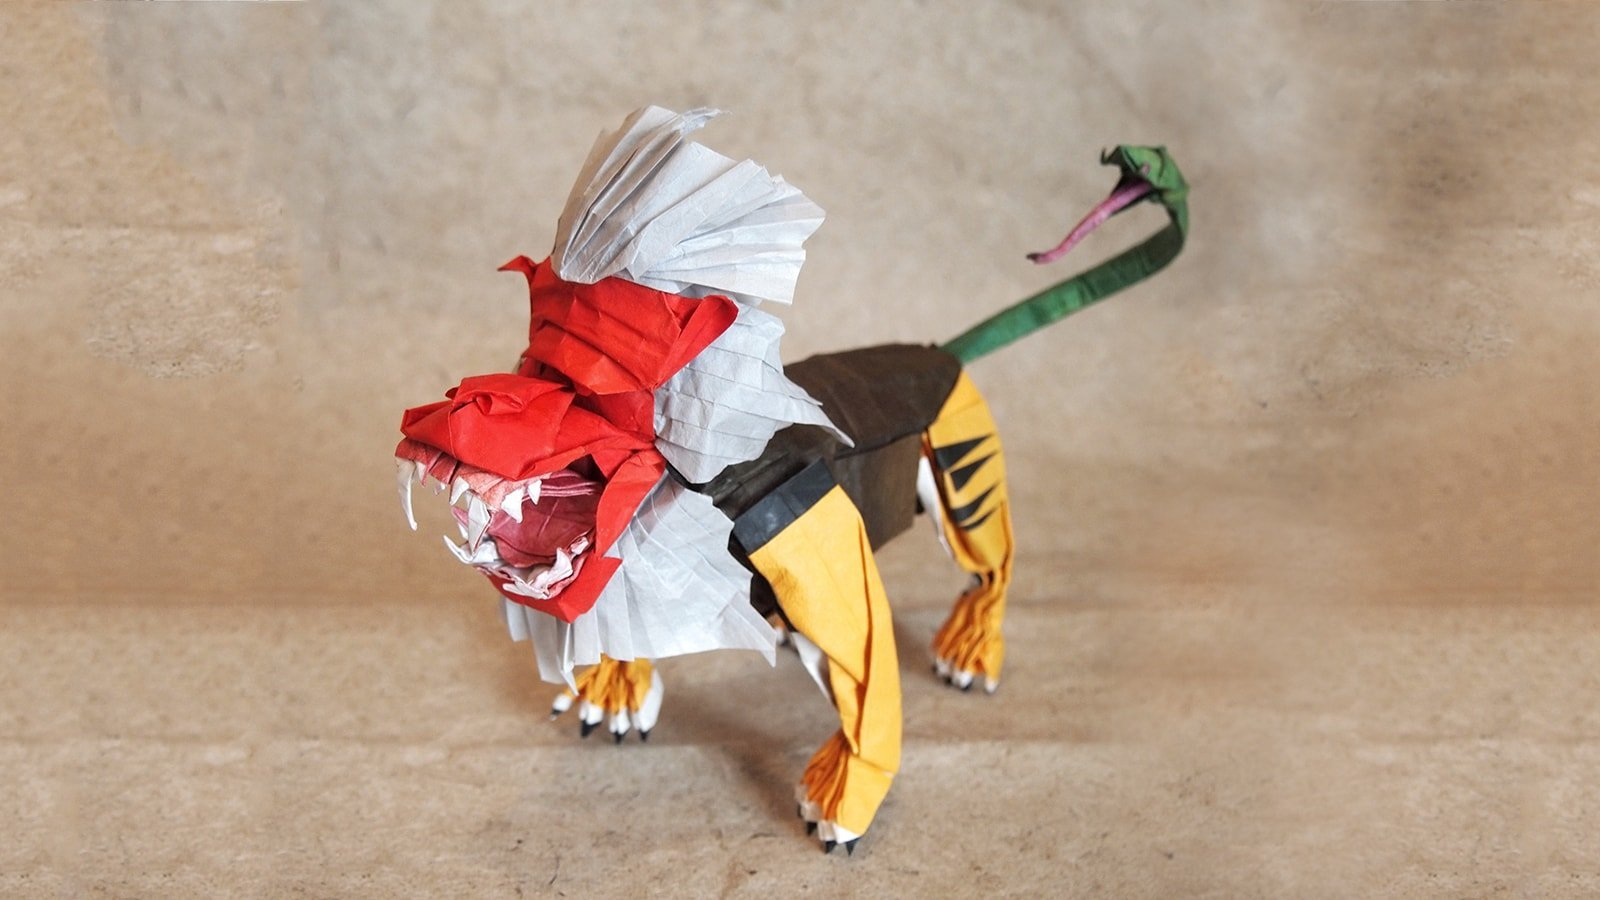 Incredible Origami Dragons That Will Set Your Heart On Fire Complex Diagrams Amazing Mythological Creations You Have To See Believe